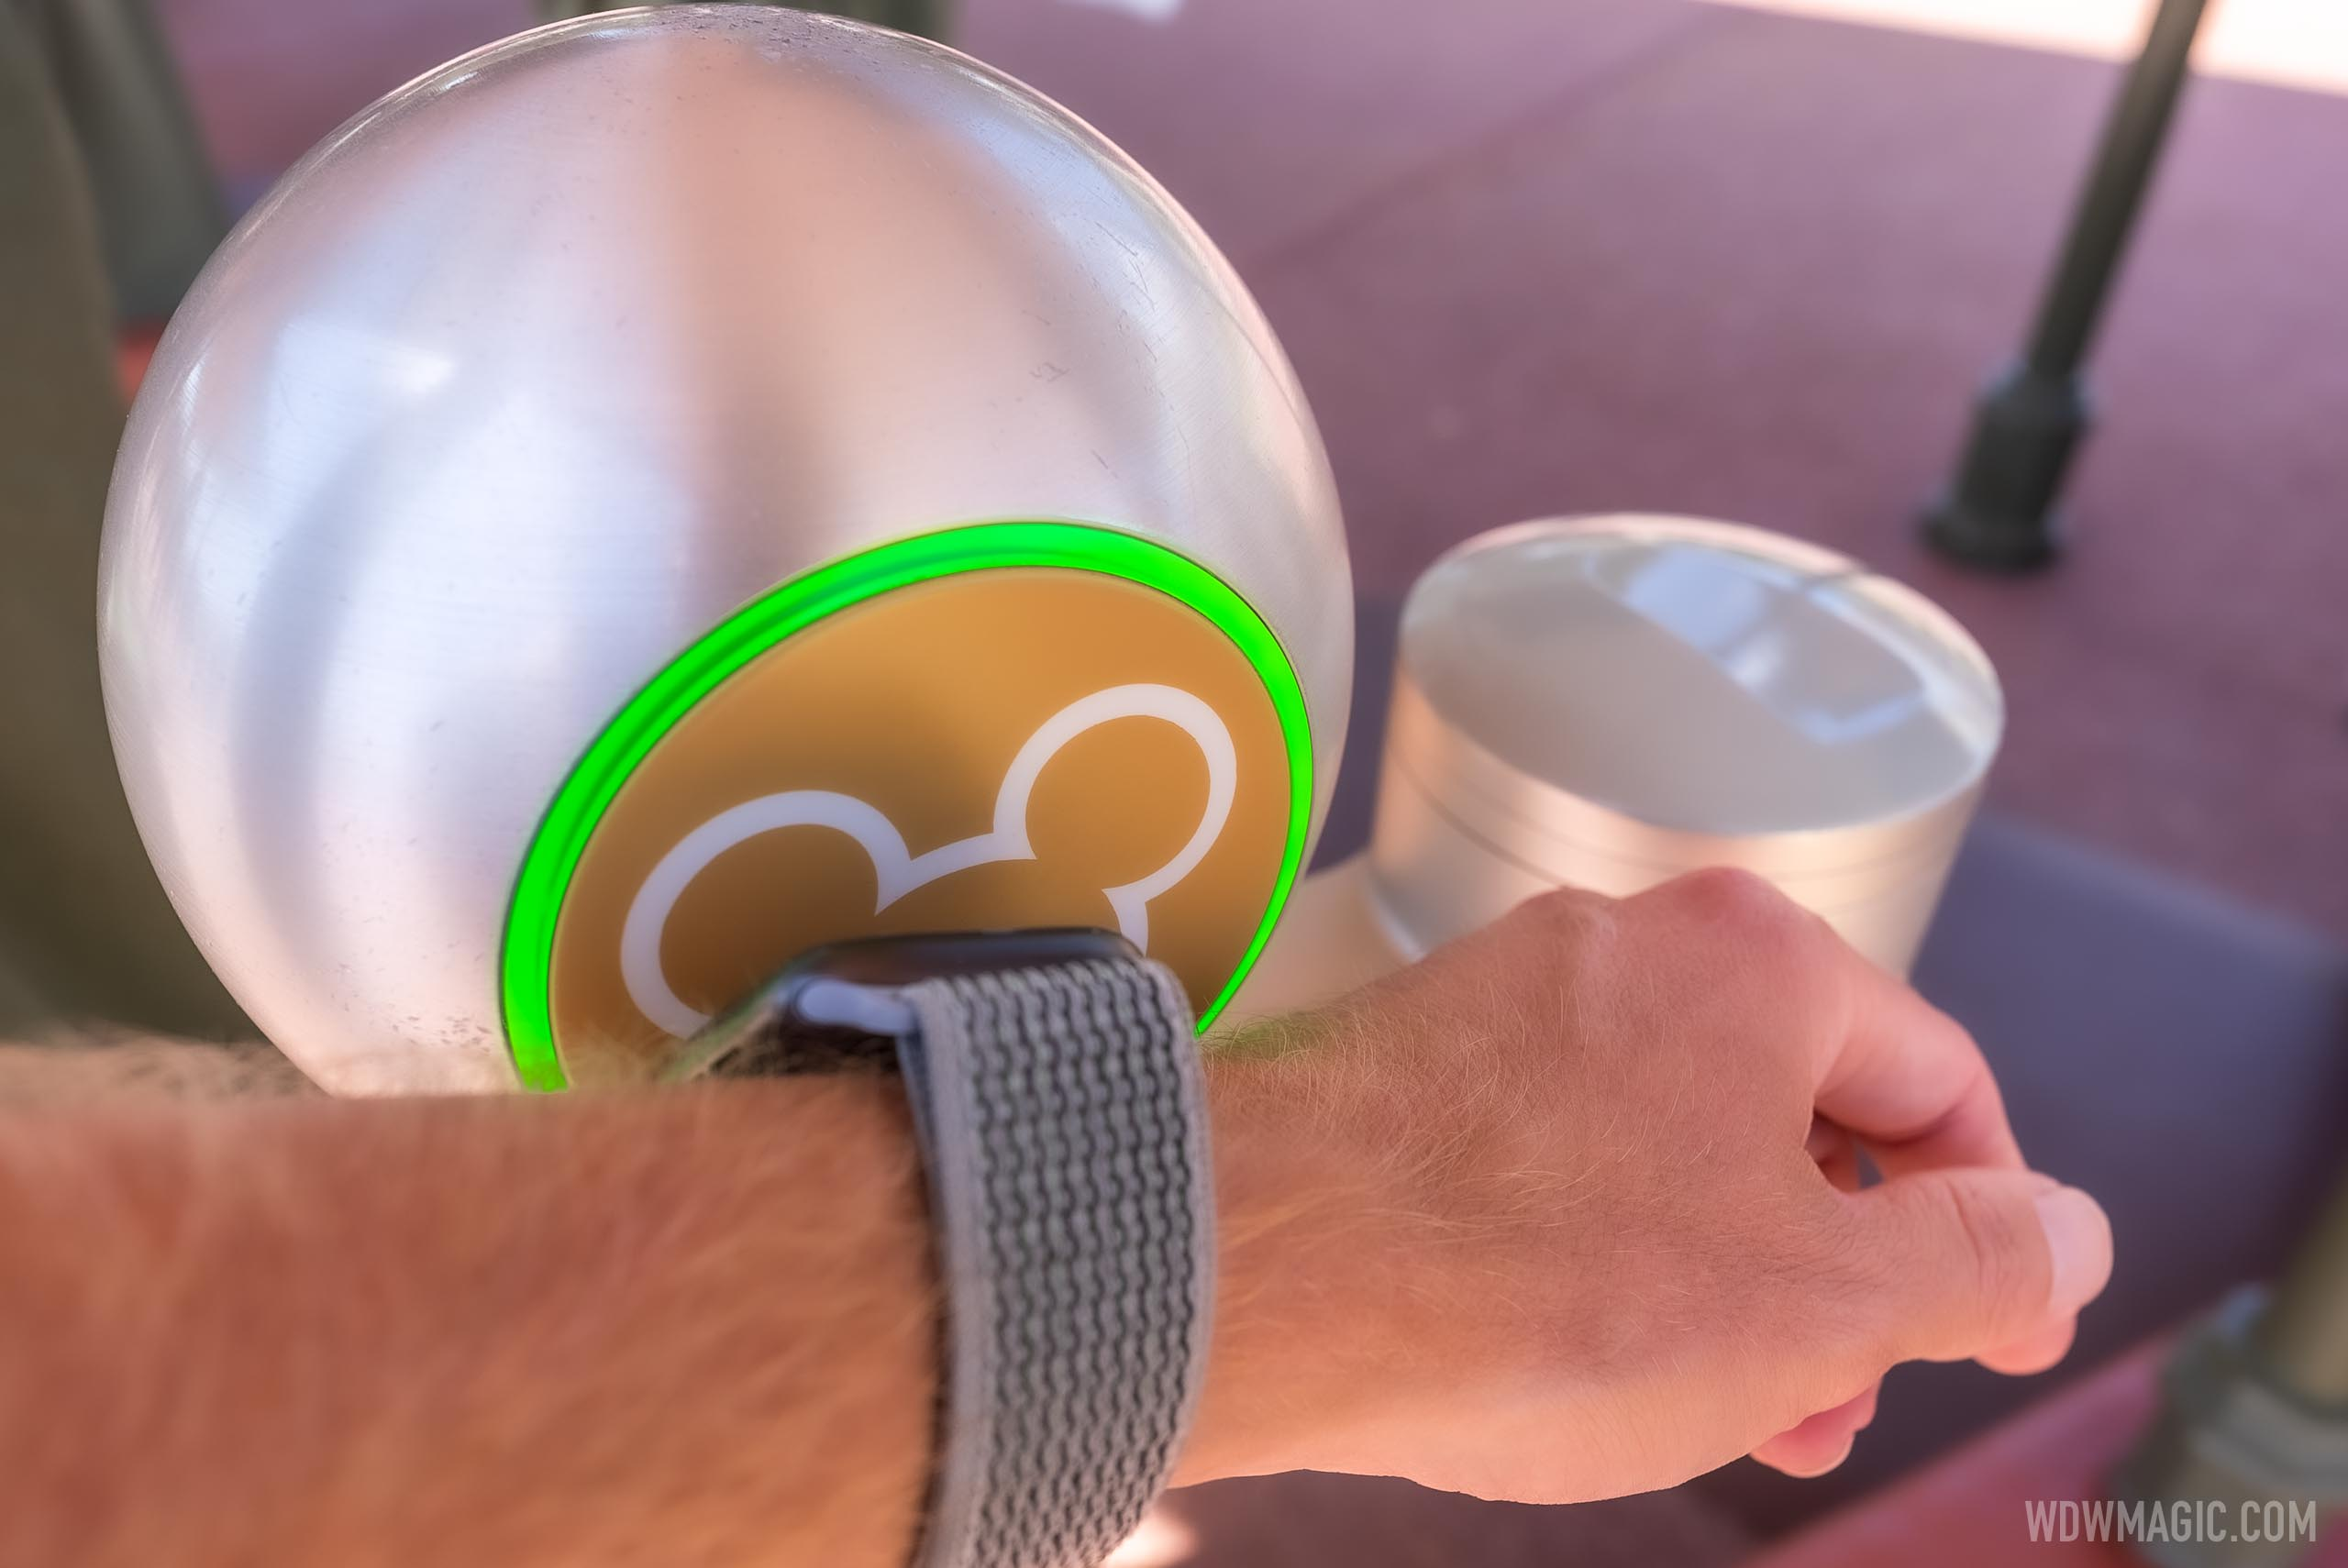 Apple Watch being used at the entrance to Magic Kingdom